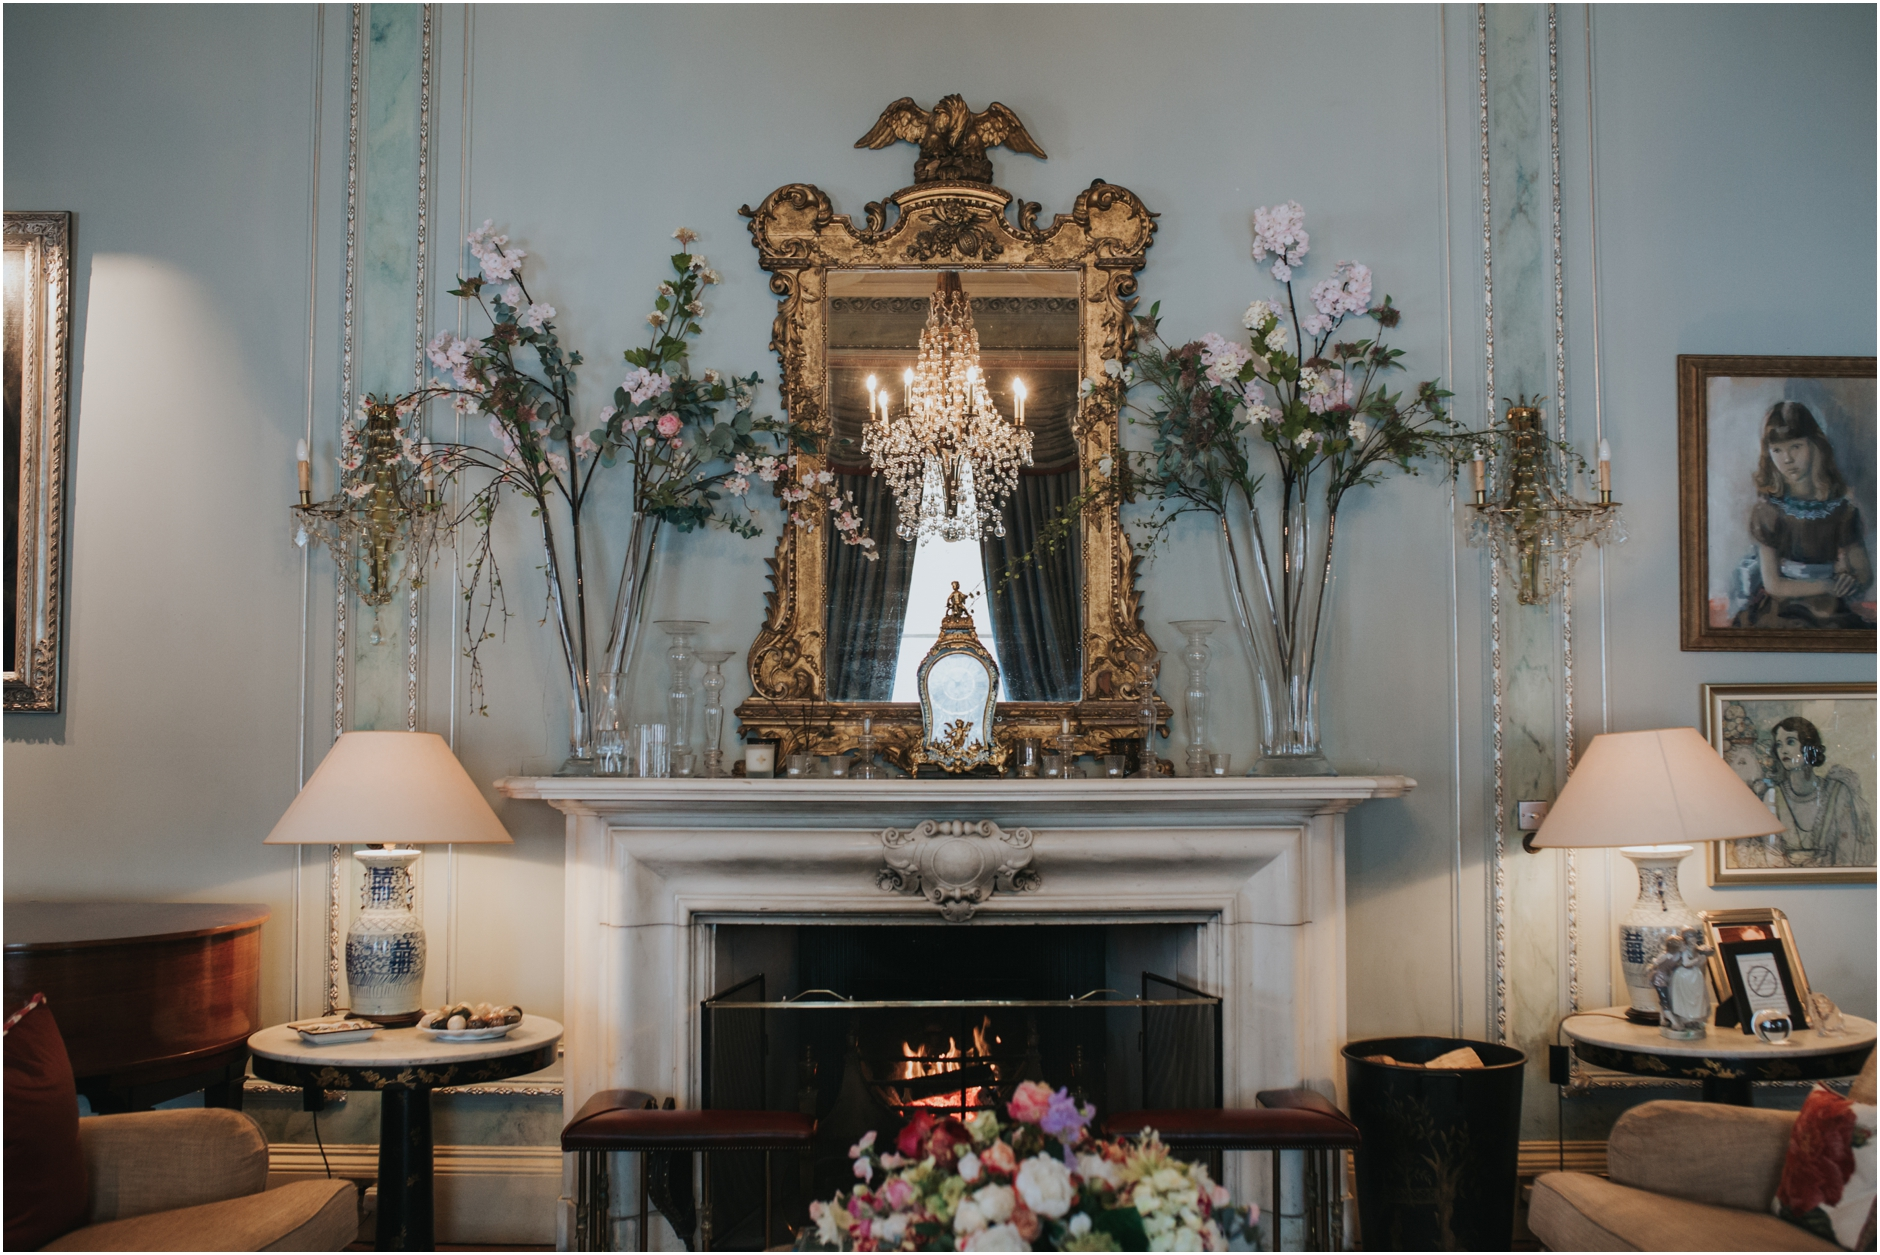 dundas castle drawing room with blue walls and gold mirror above fireplace